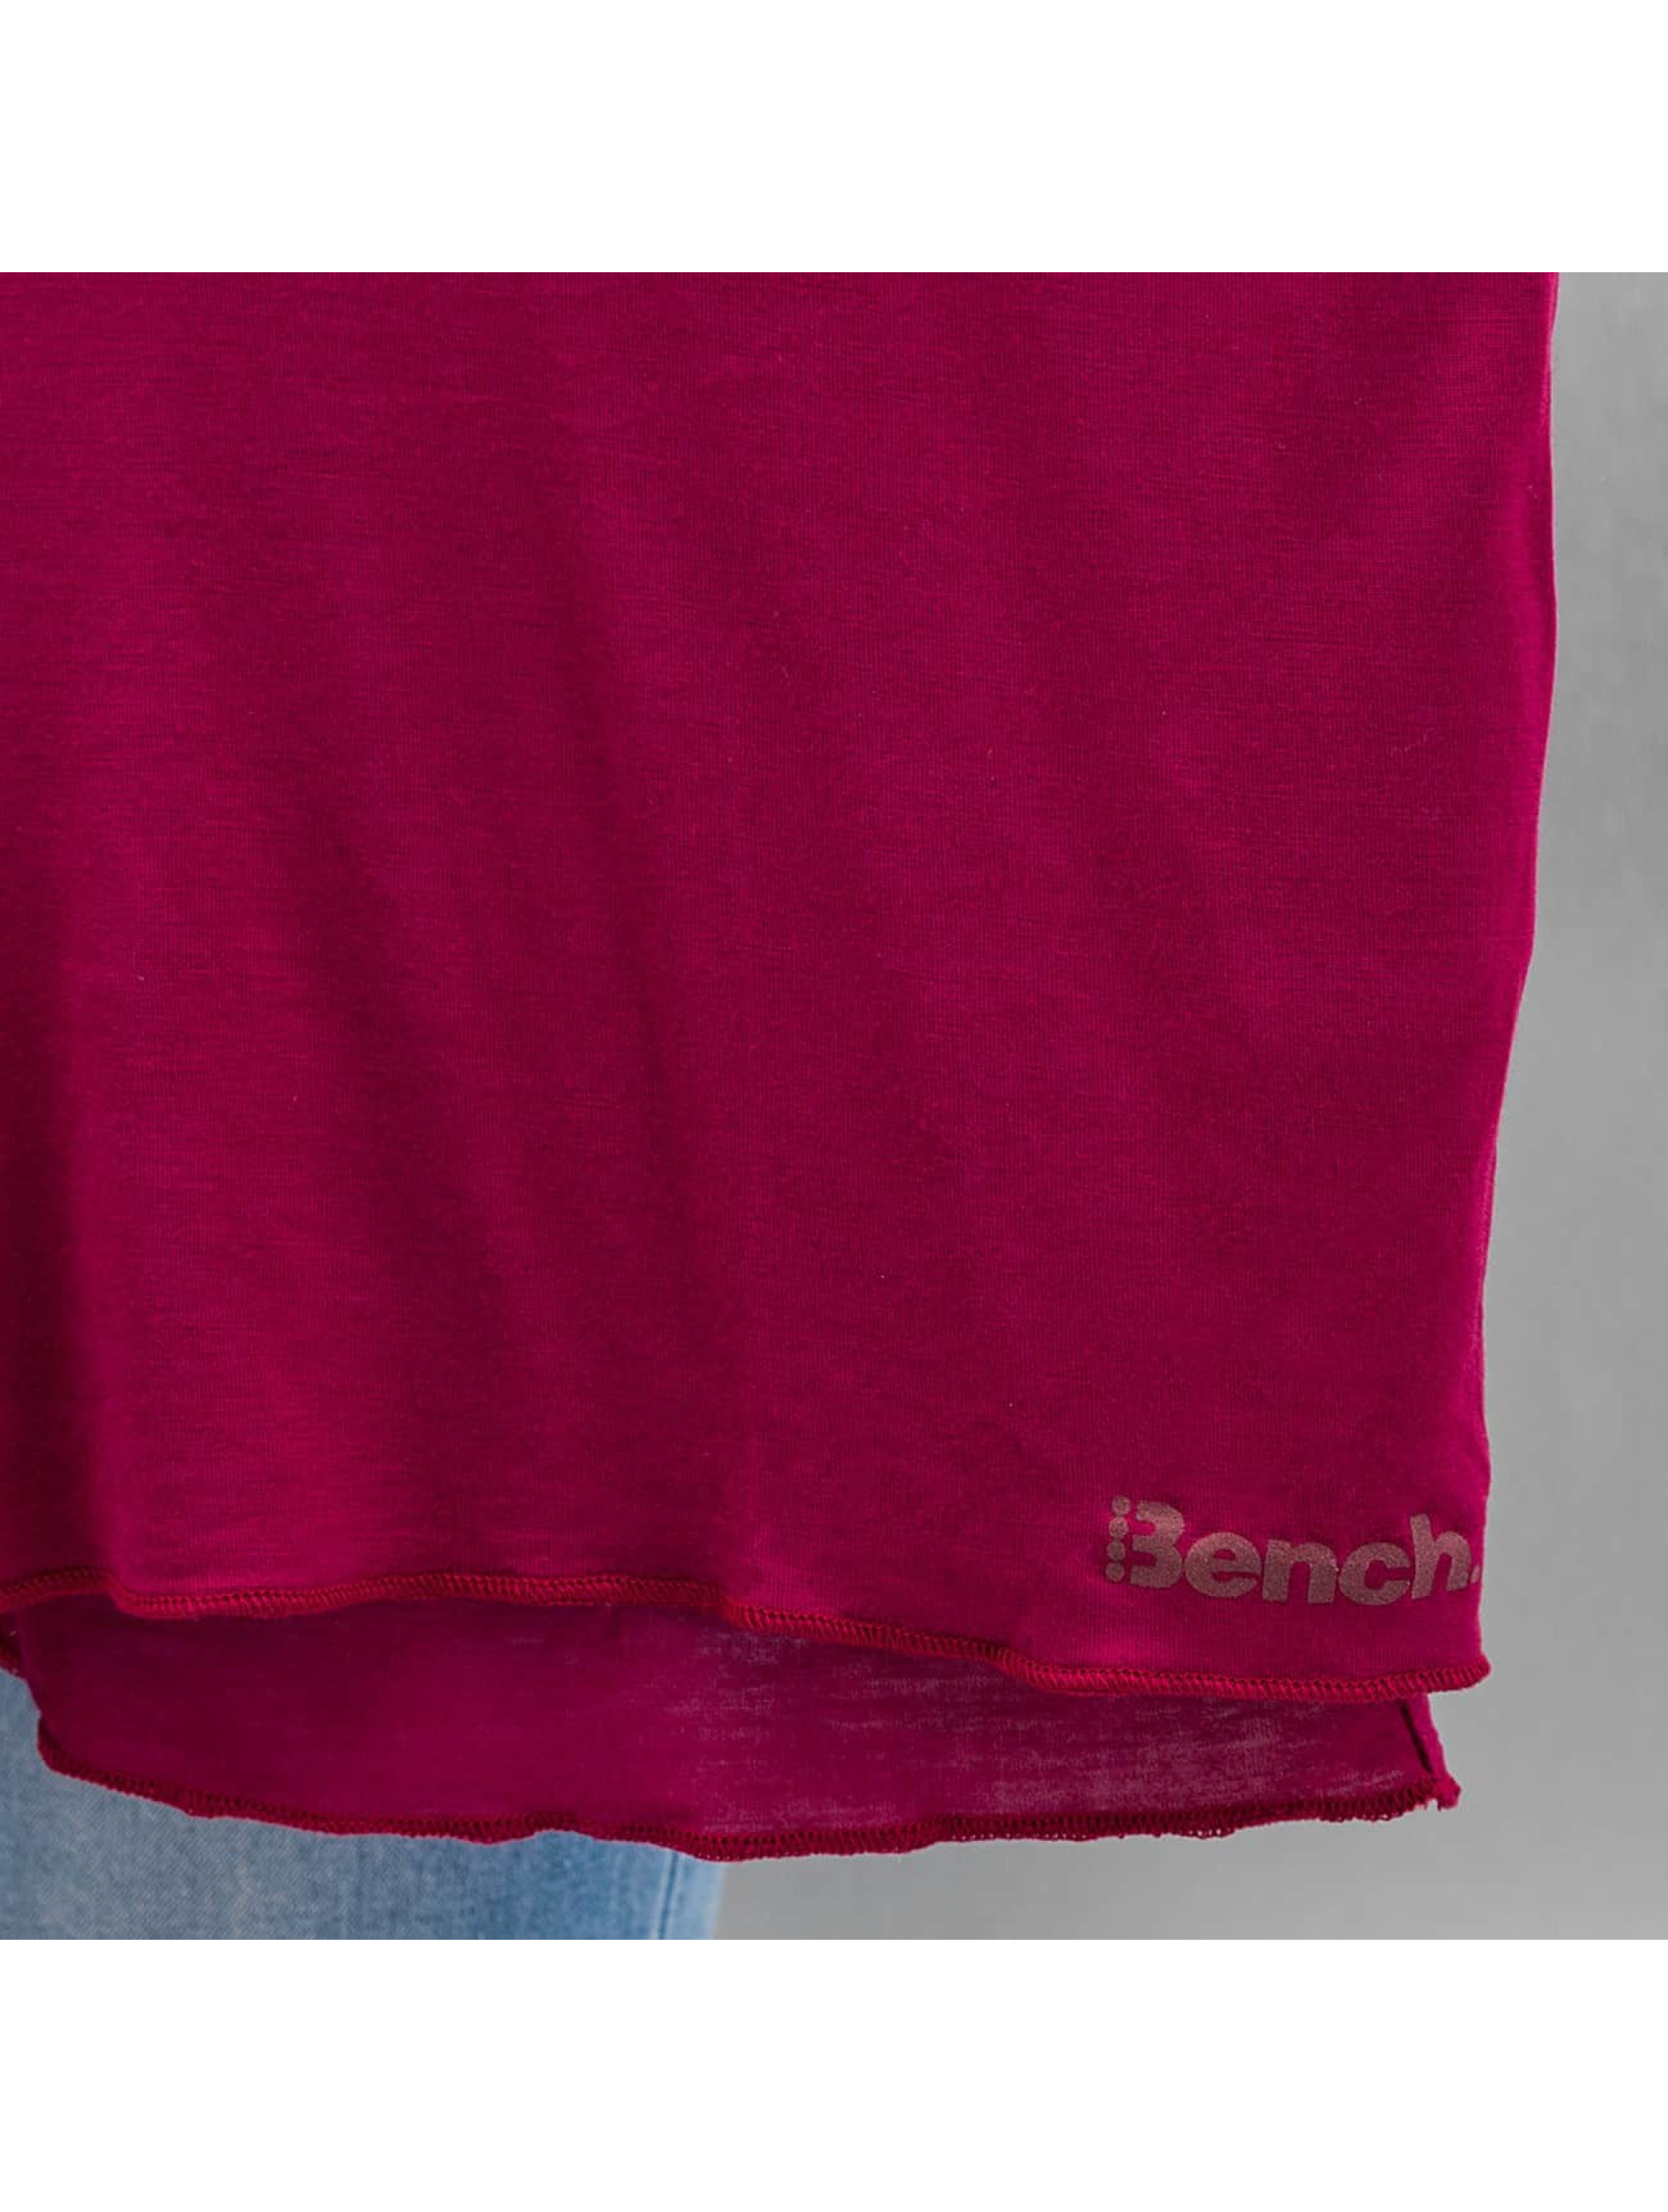 Bench Longsleeve Performance Addendum Oversize red